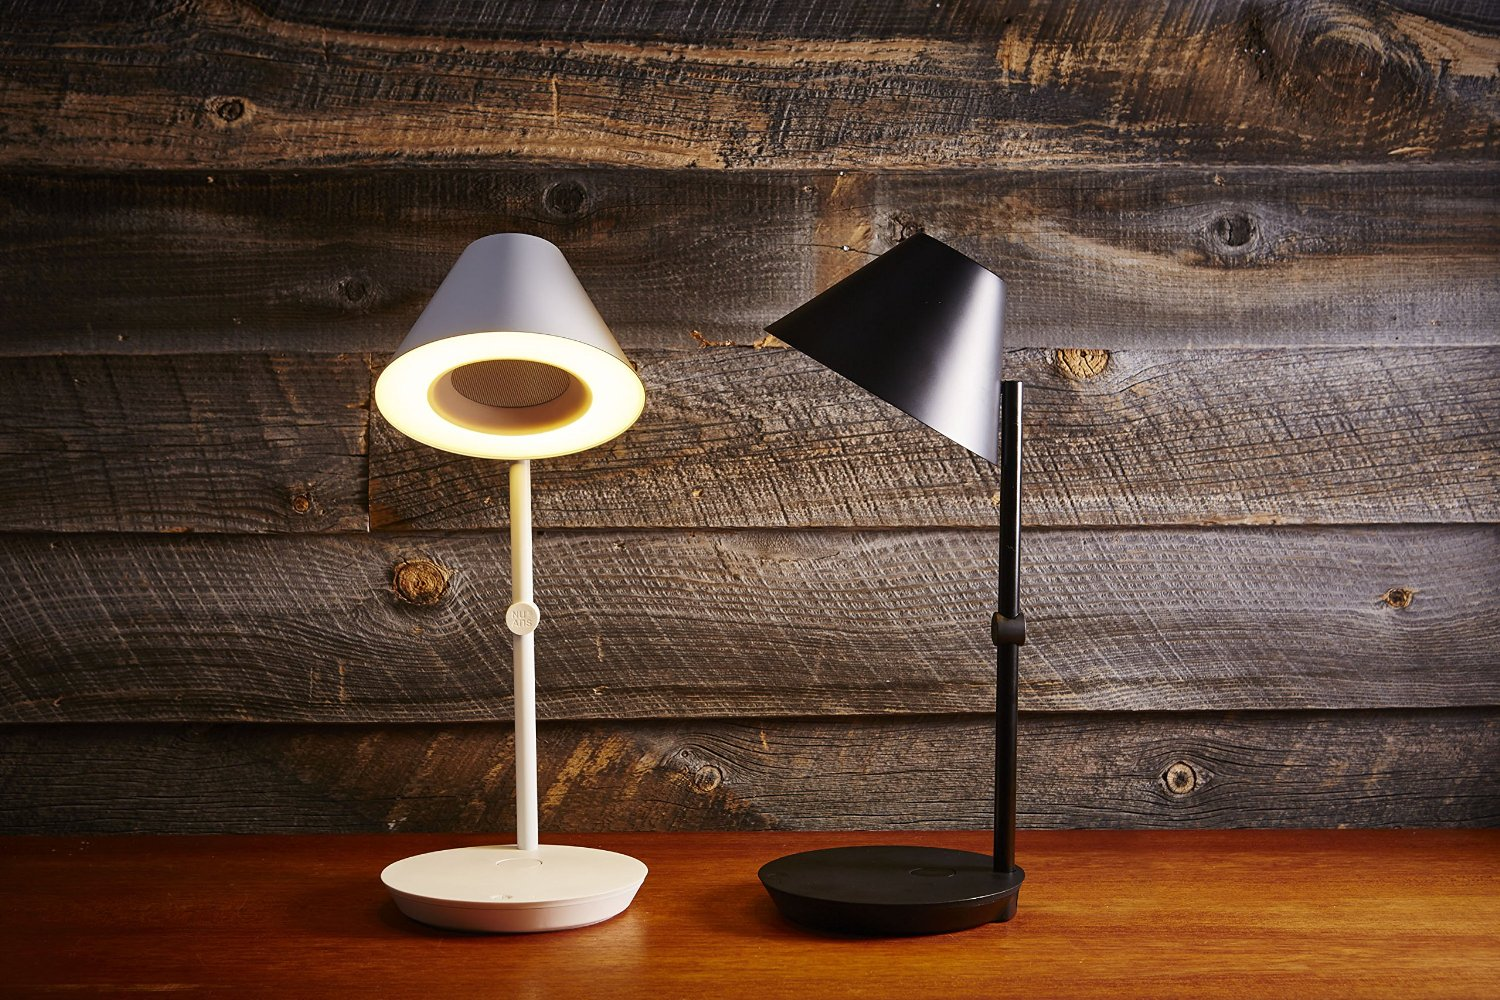 CONE Lightning Dock, Speaker, and Lamp